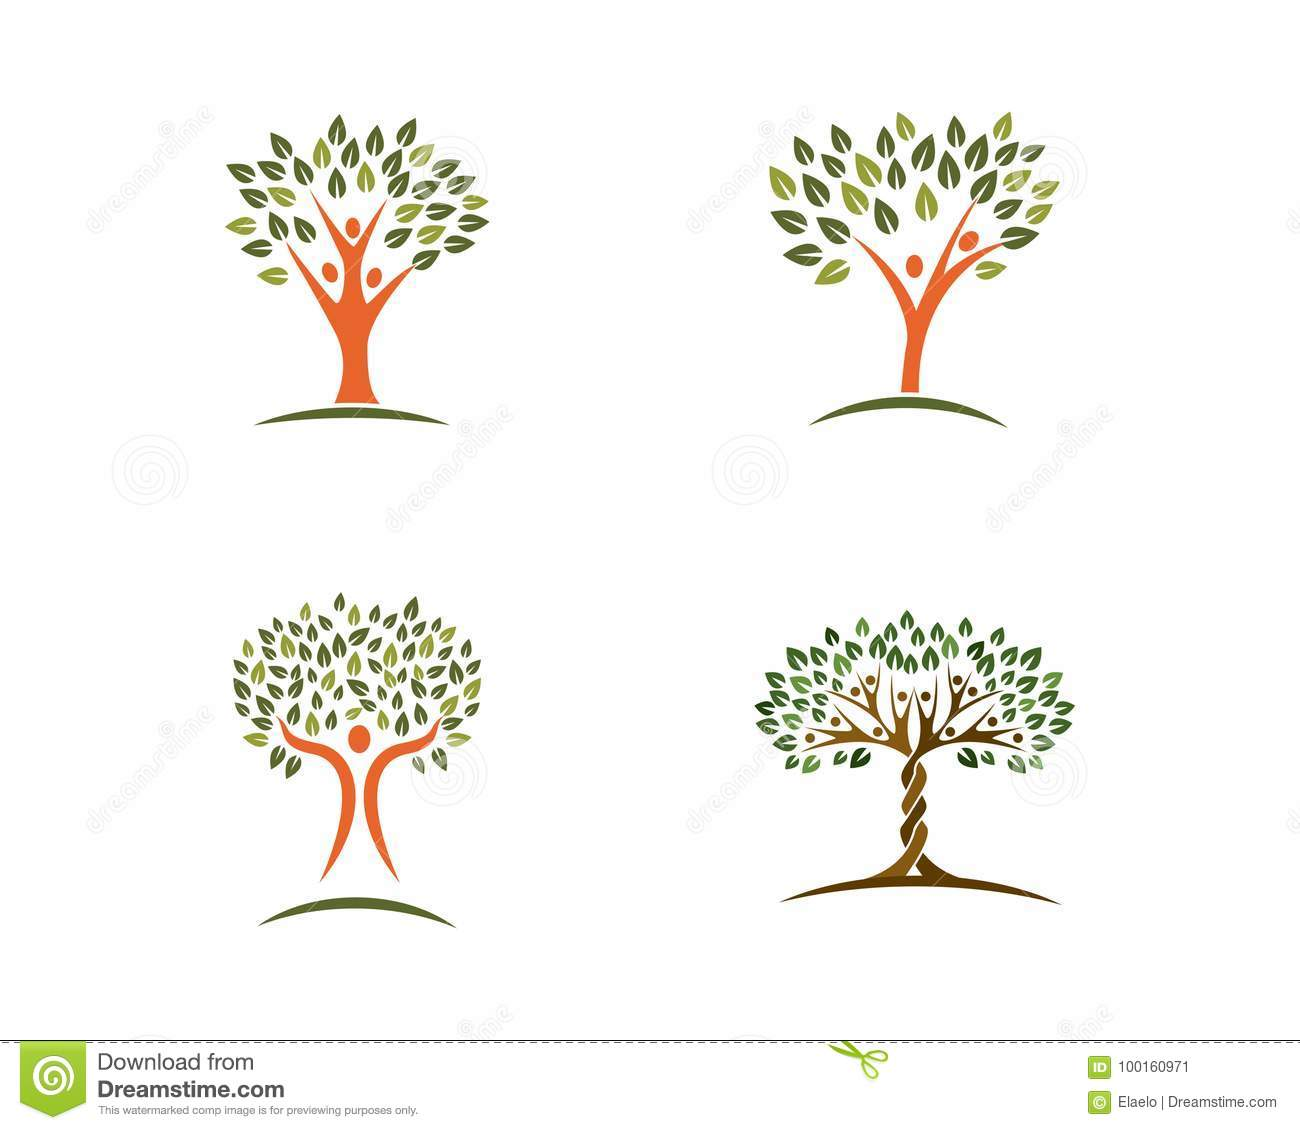 Friendship tree template choice image professional for Friendship tree template